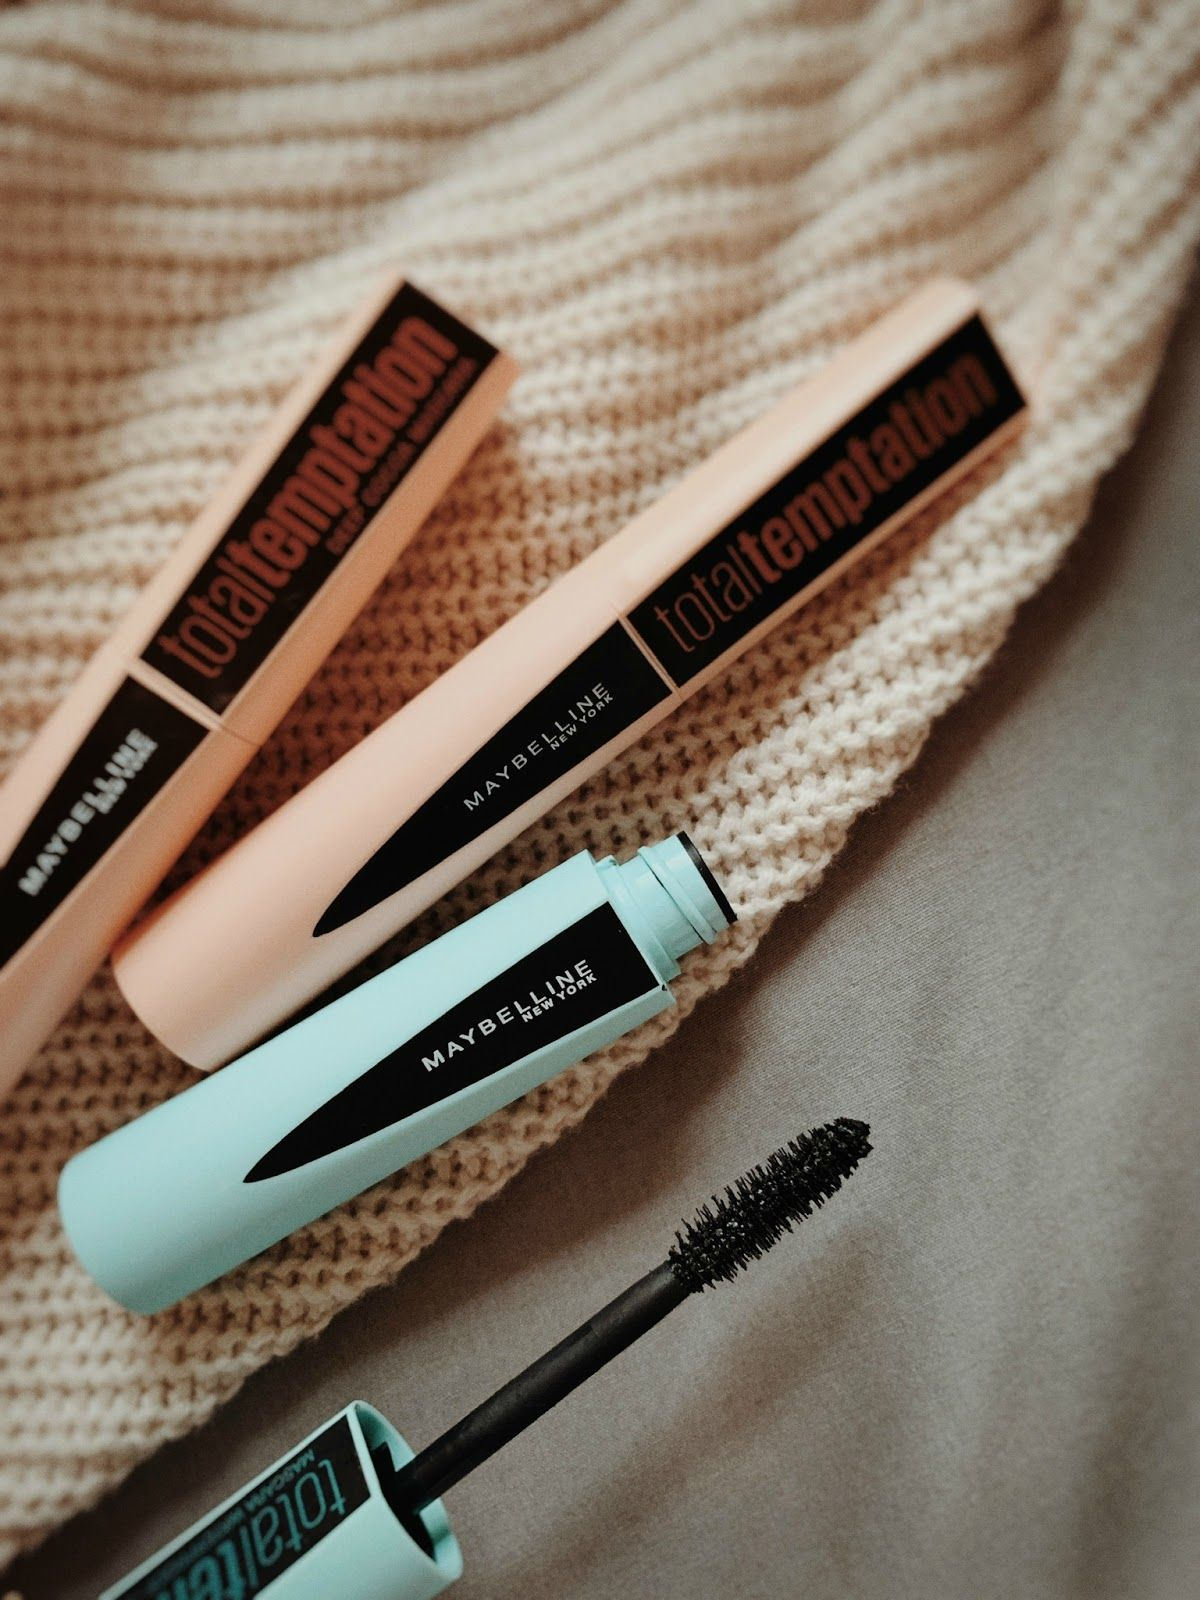 NEW Maybelline Total Temptation Mascara Review in 2020